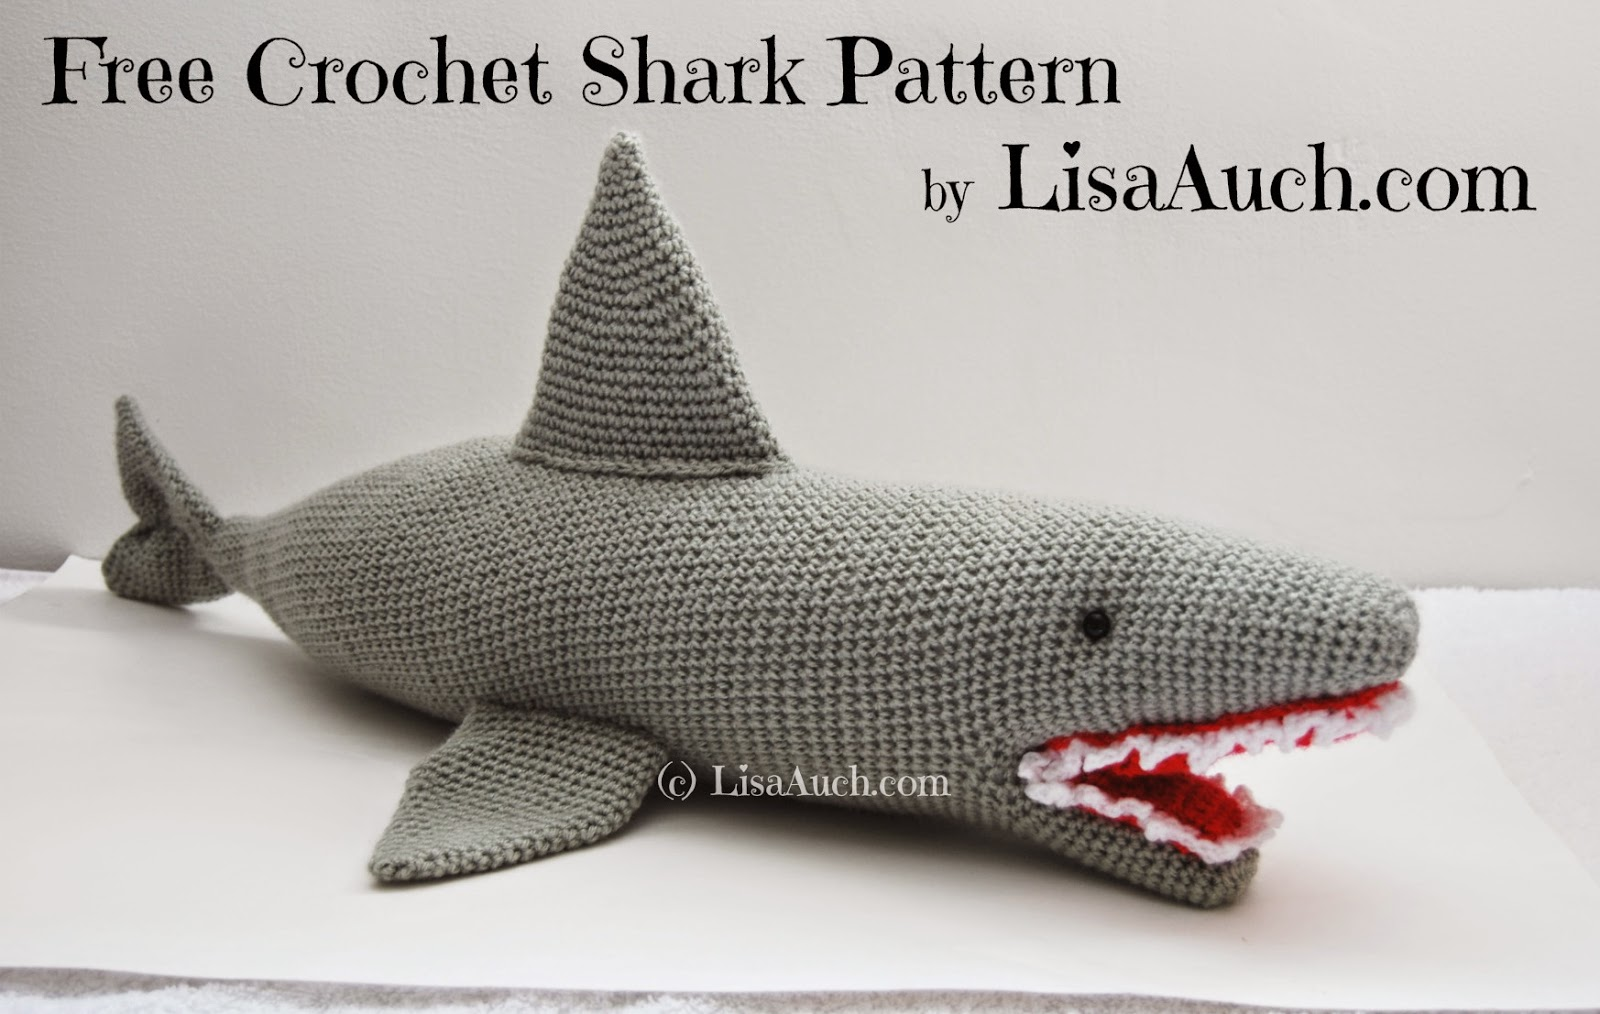 free crochet shark pattern, crochet , shark , pattern